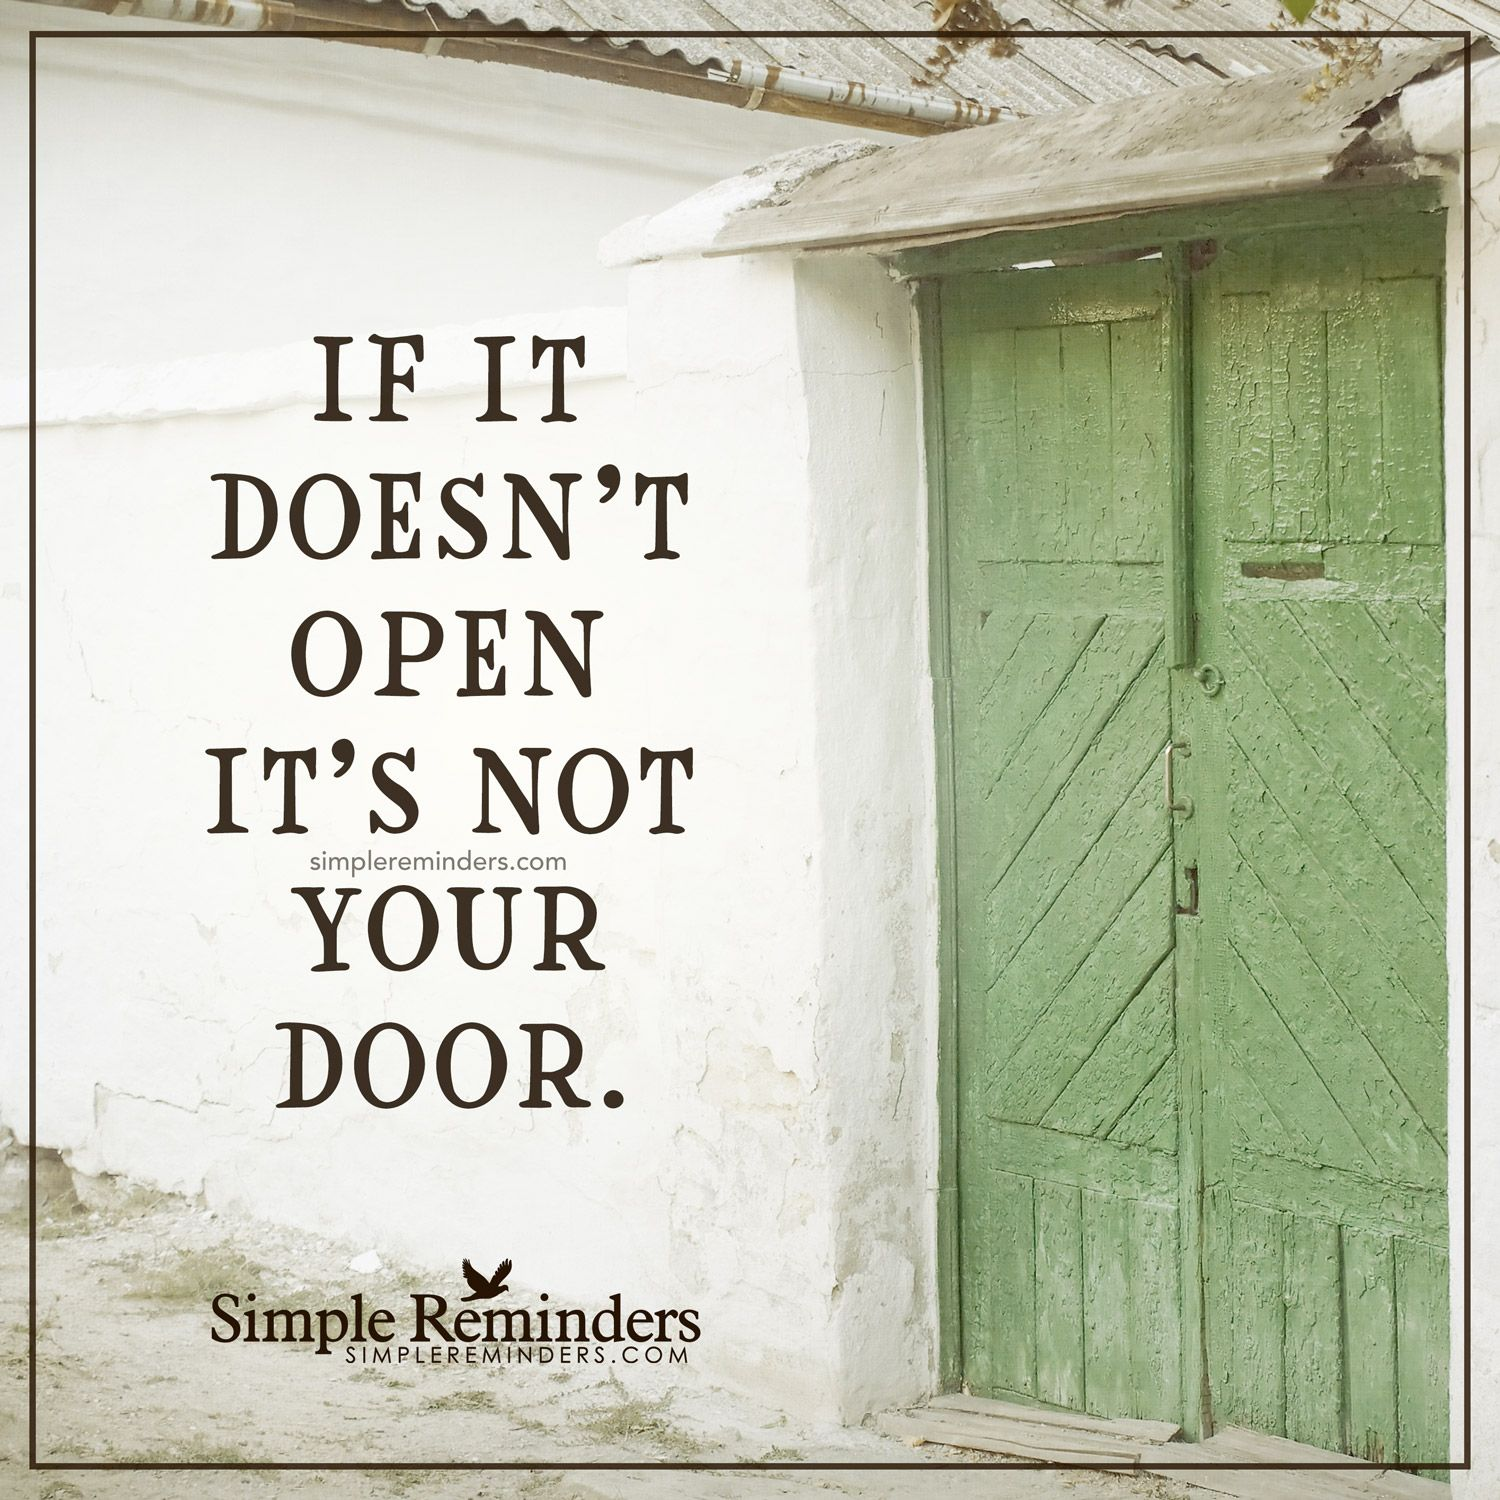 Quotes About Doors If The Door Does Not Open If It Doesn't Open It's Not Your Door